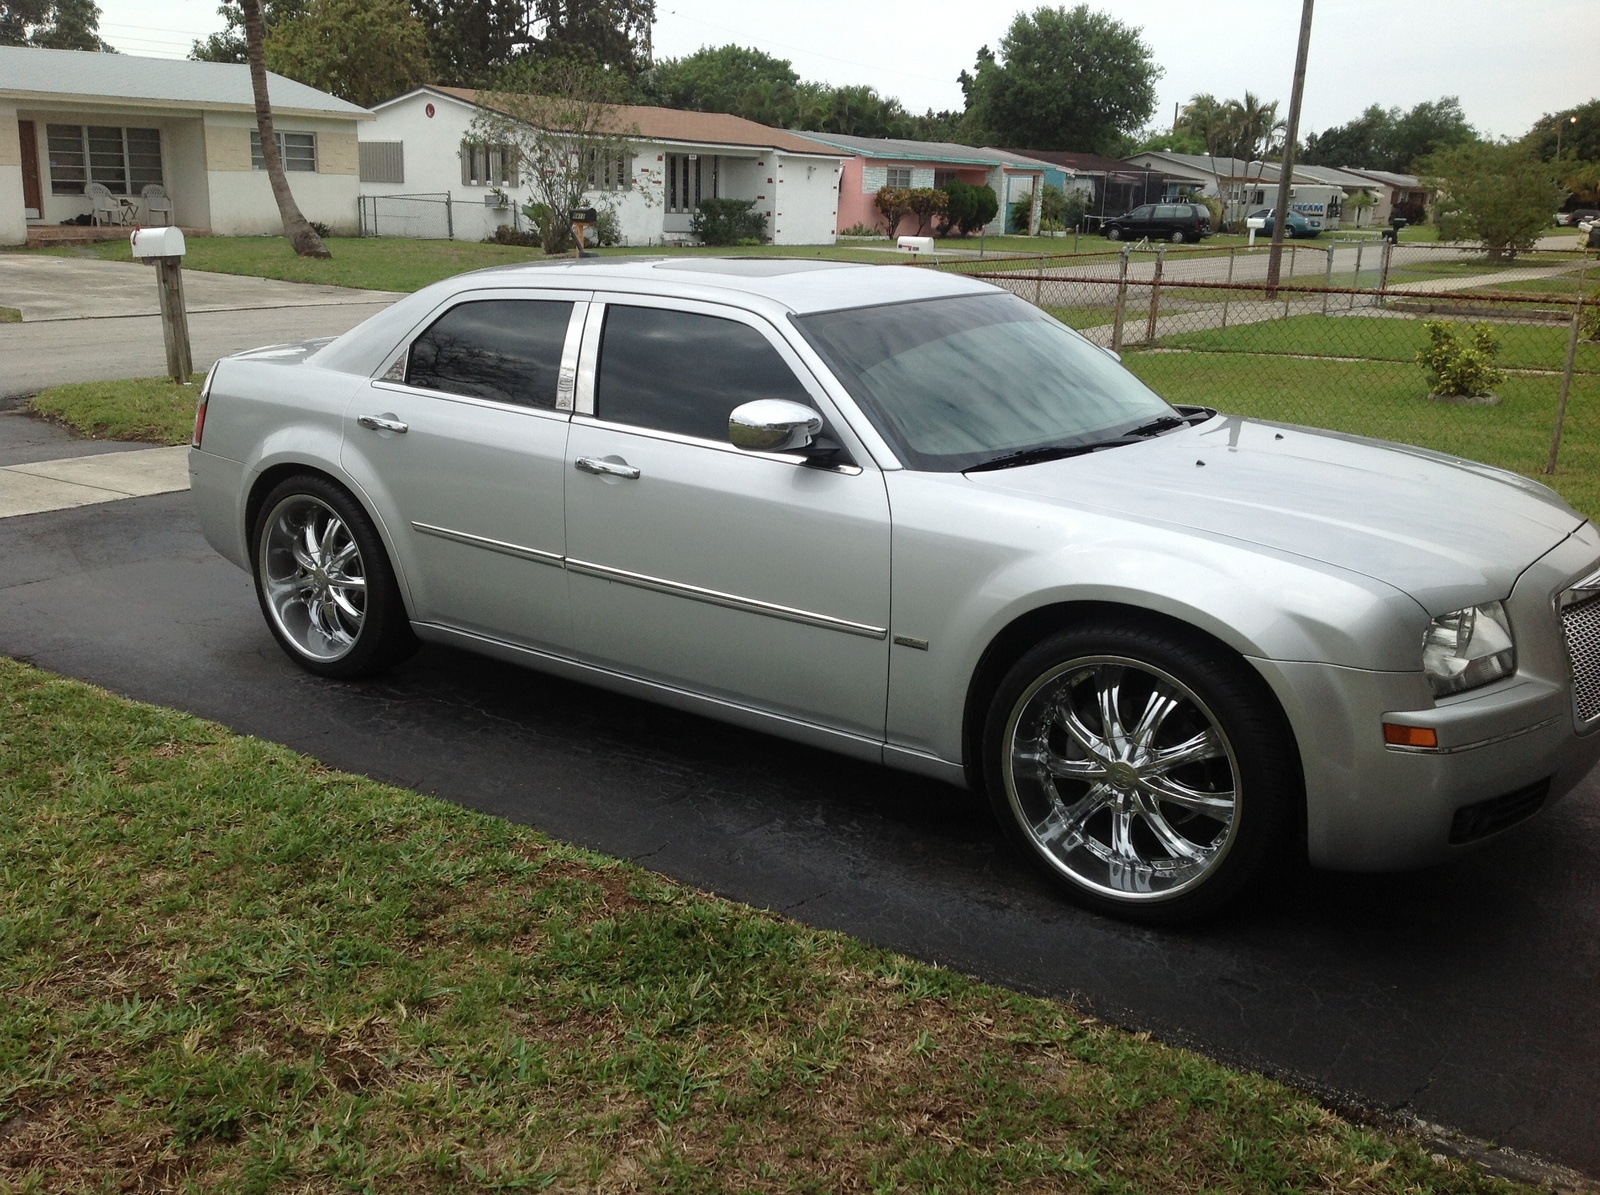 Picture of 2008 Chrysler 300 Touring, exterior